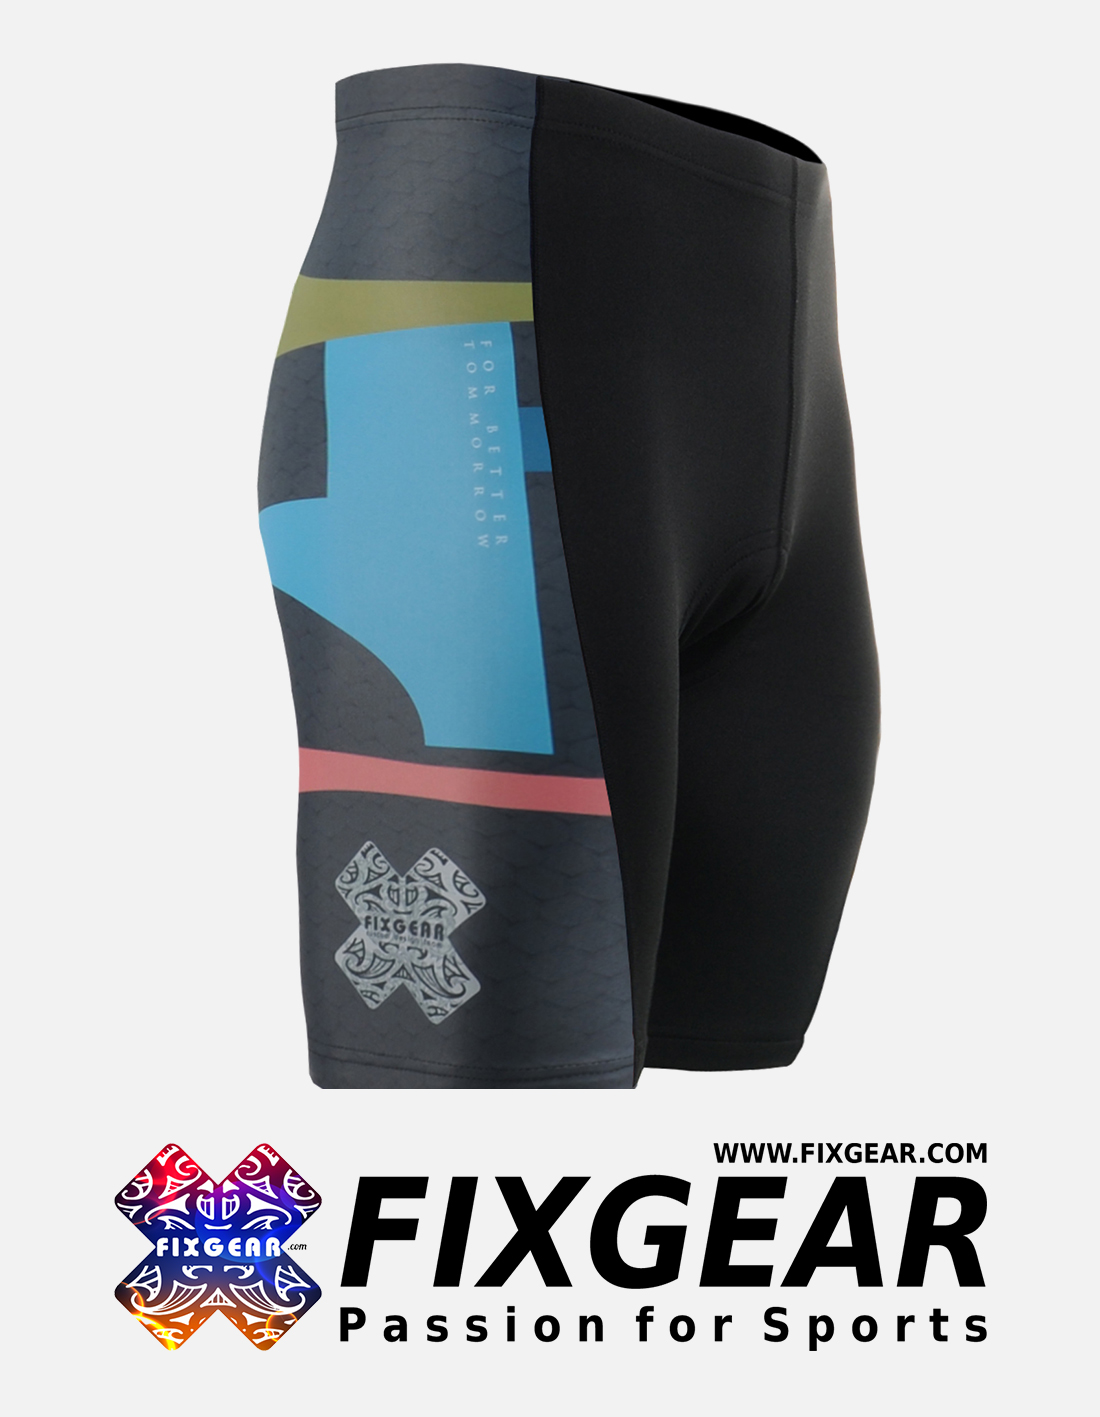 FIXGEAR ST-34K Men's Cycling Cycling Padded Shorts